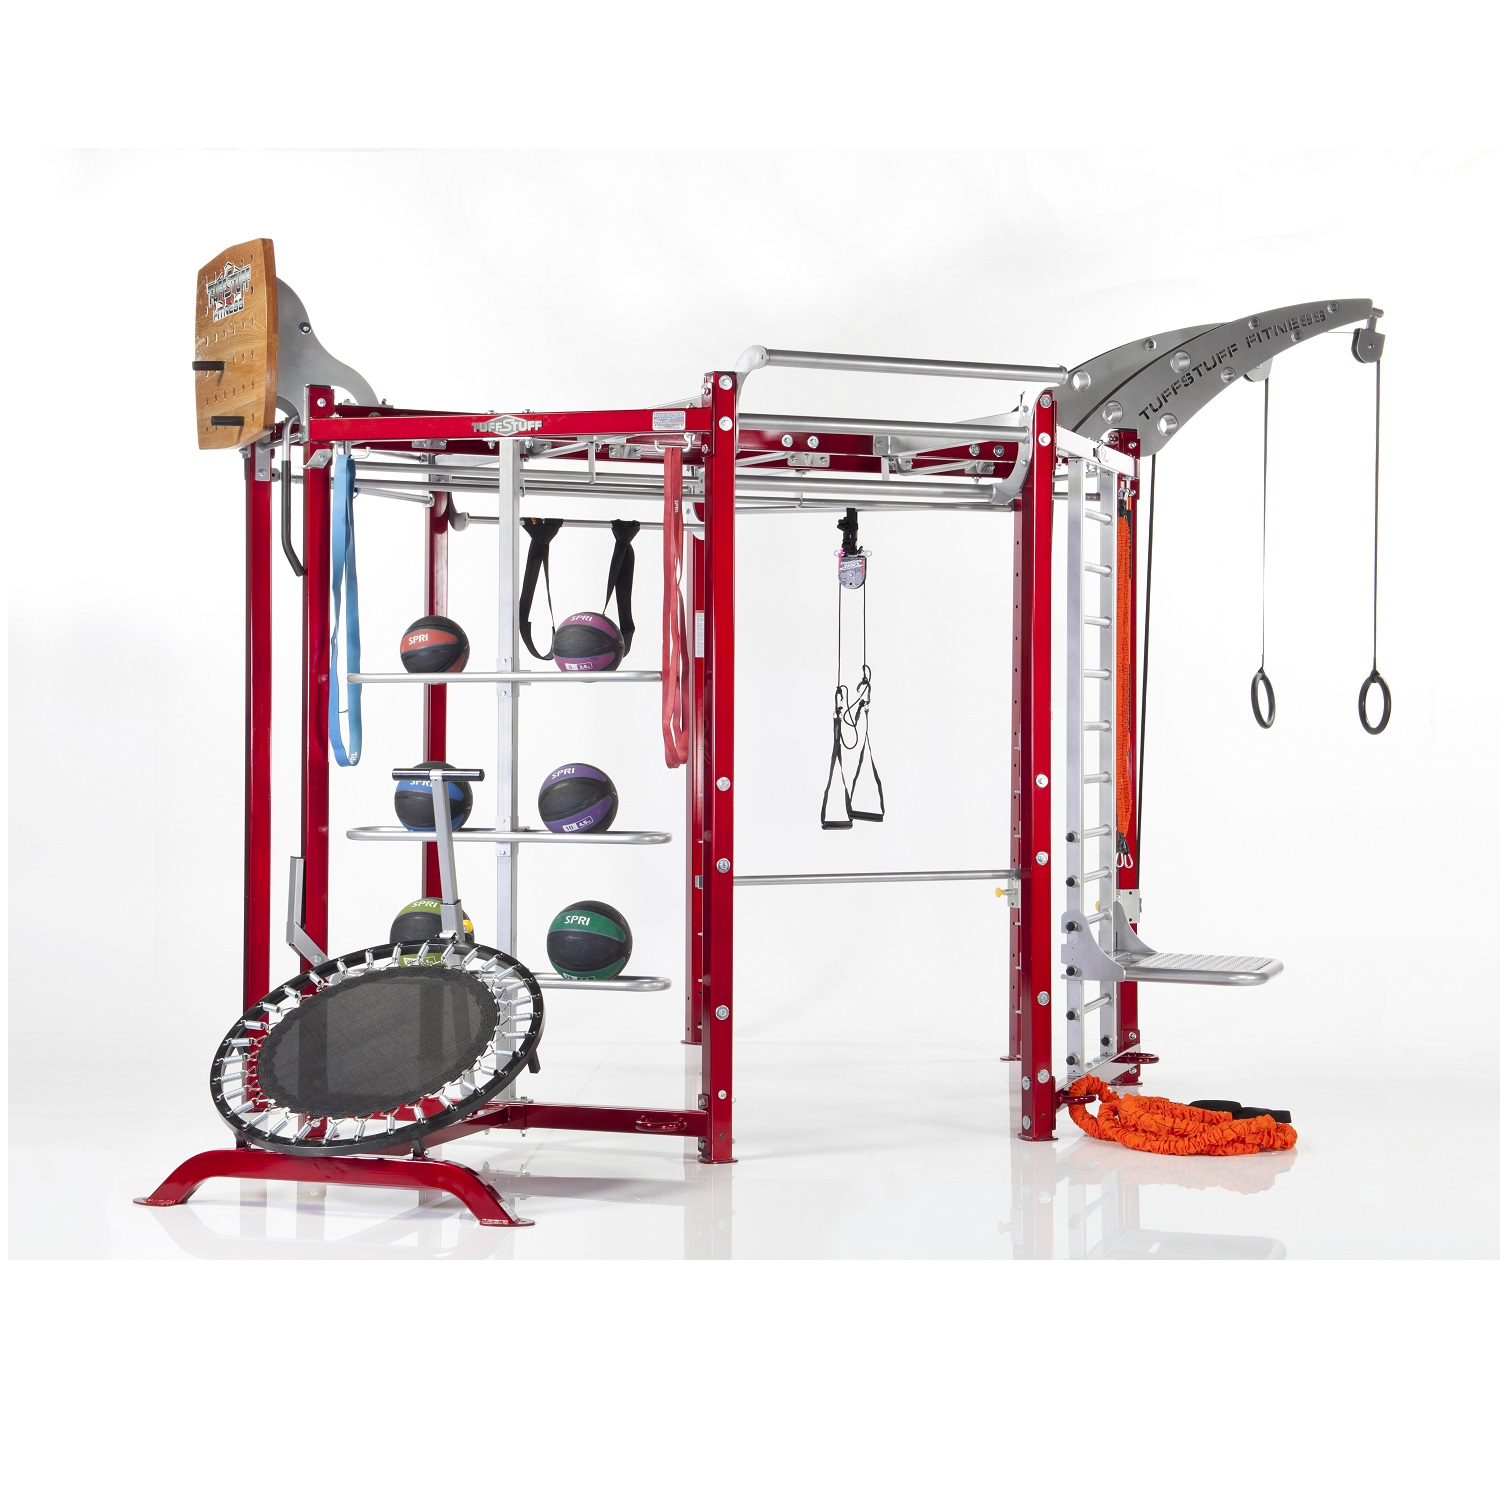 CT-8100E - CT-8 Elite Fitness Trainer